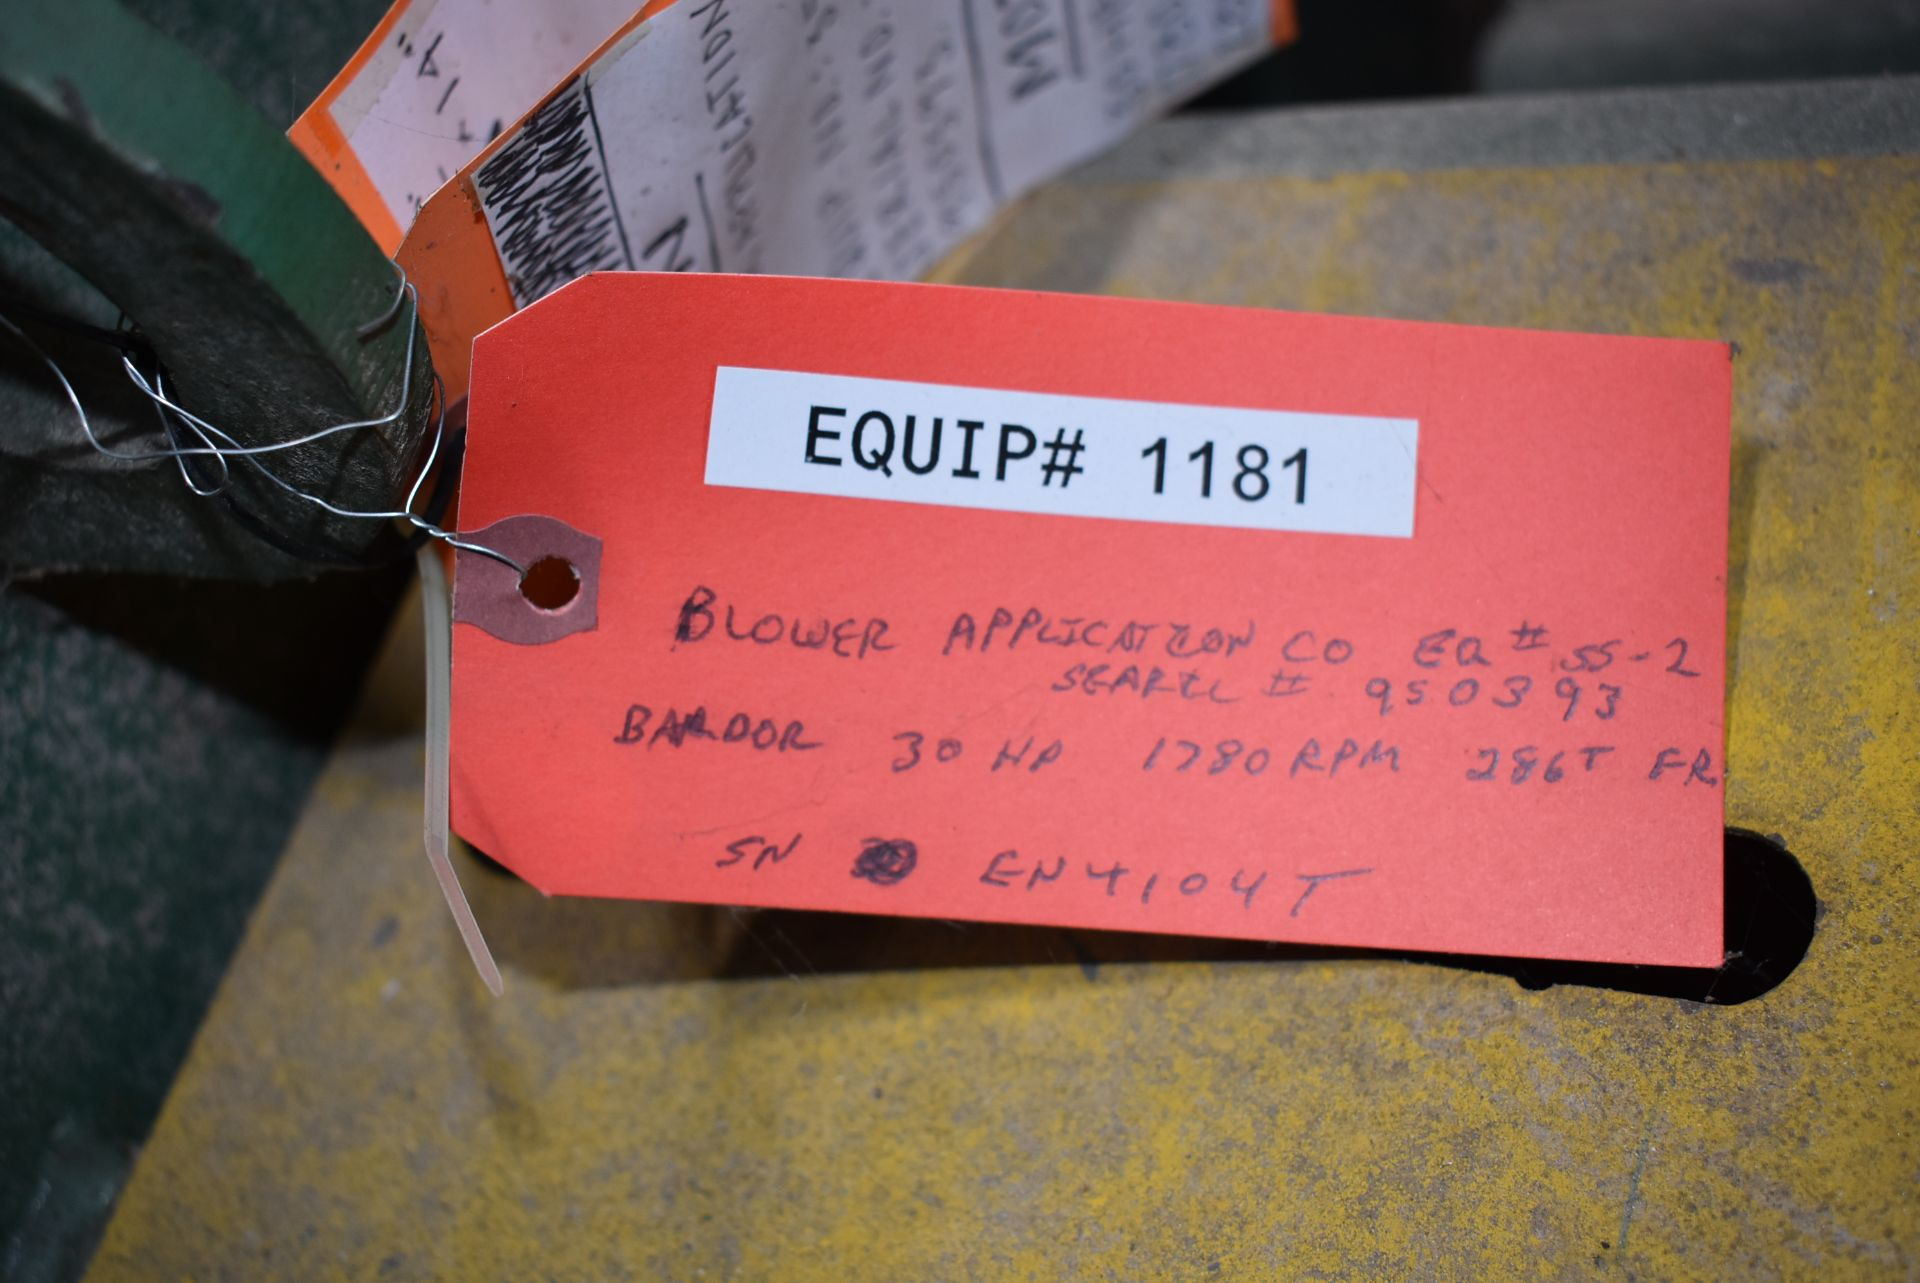 Blower Application Company, 30 HP Blower Unit - Image 2 of 3